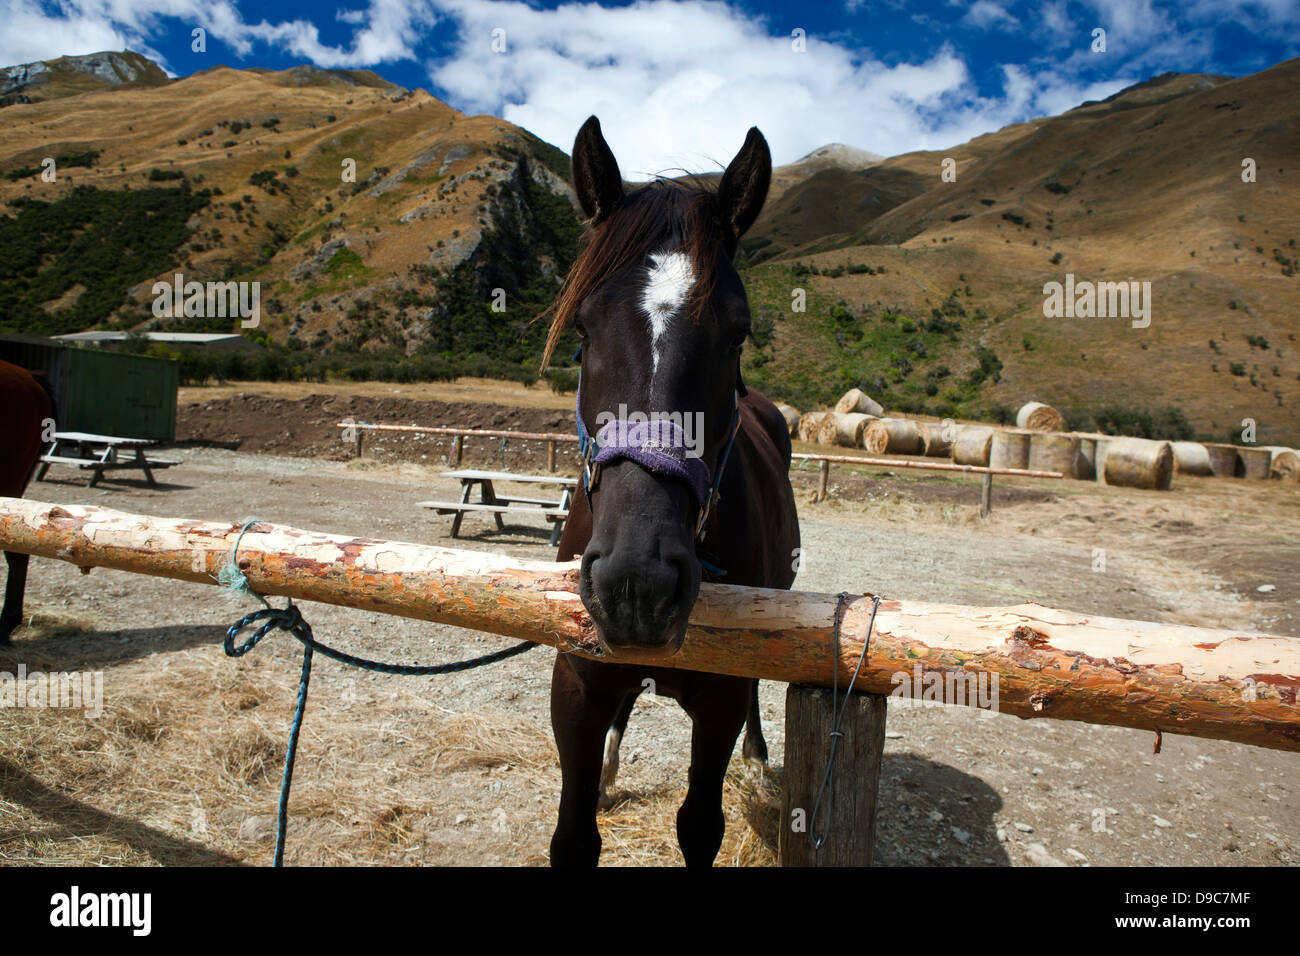 A dark colored horse tied to a post, Ben Lomond Station, Queenstown, Otago District, South Island, New Zealand - Stock Image